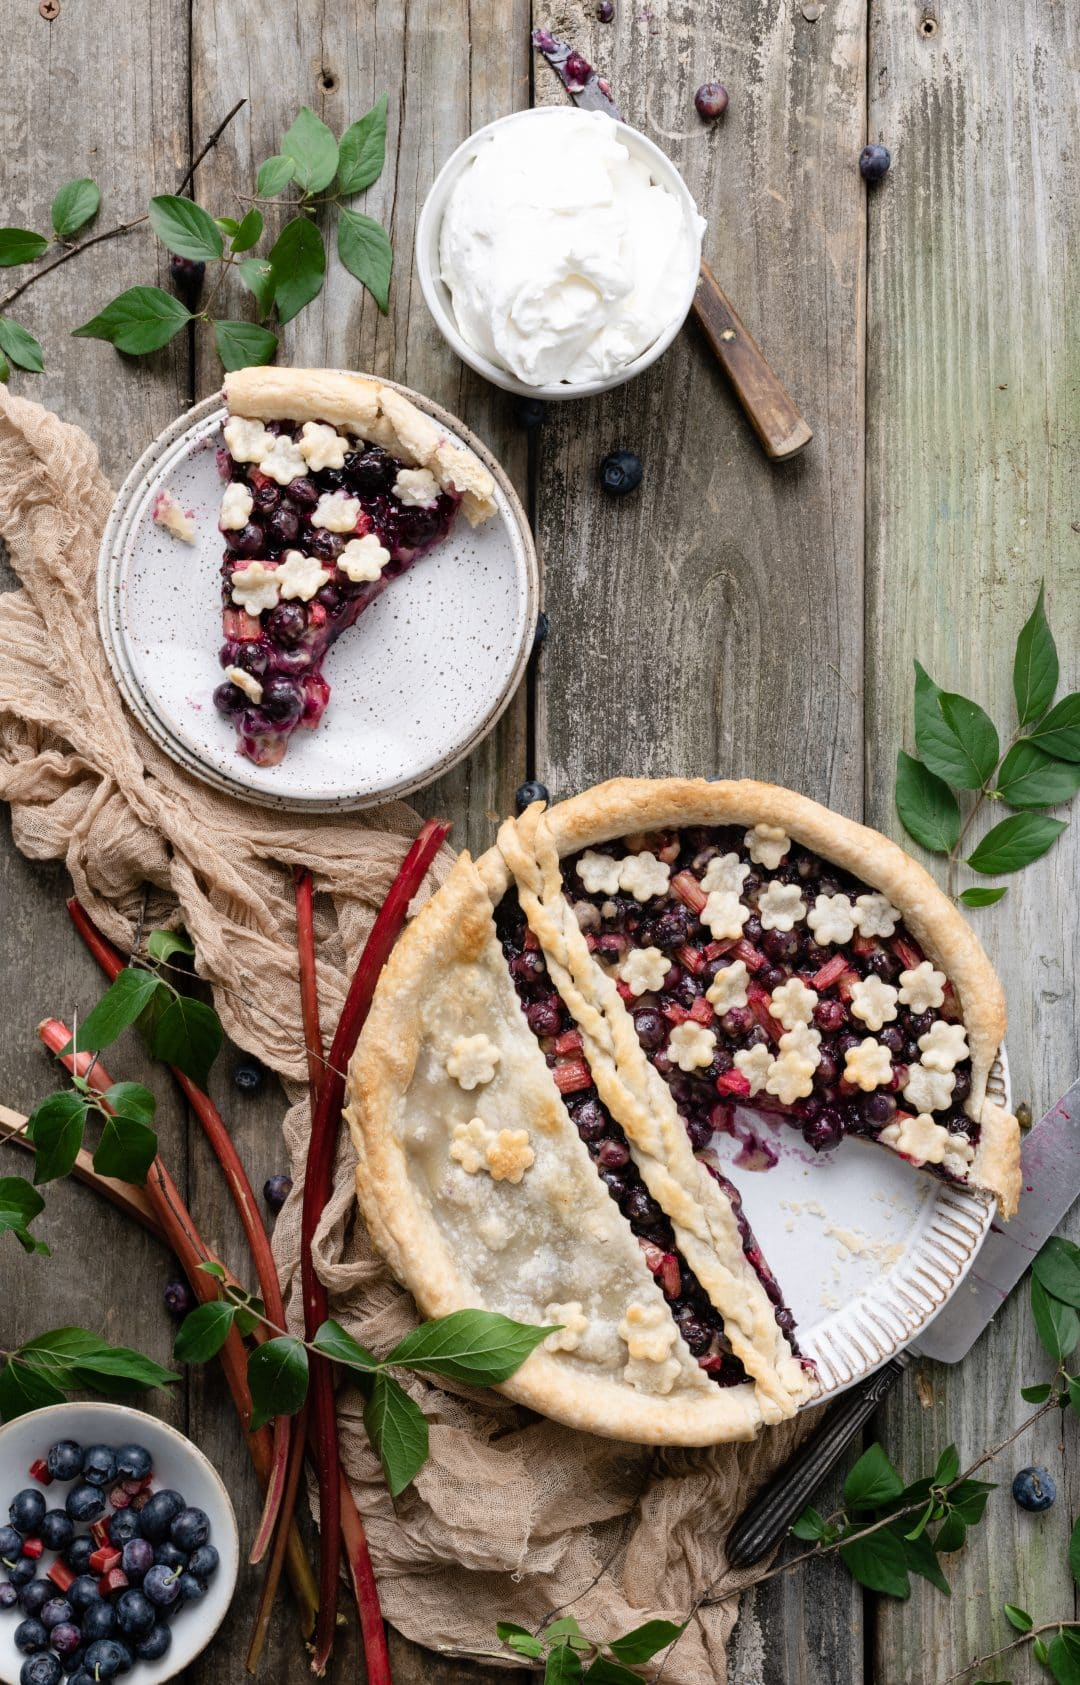 Sliced Blueberry Rhubarb Pie with flower crust design